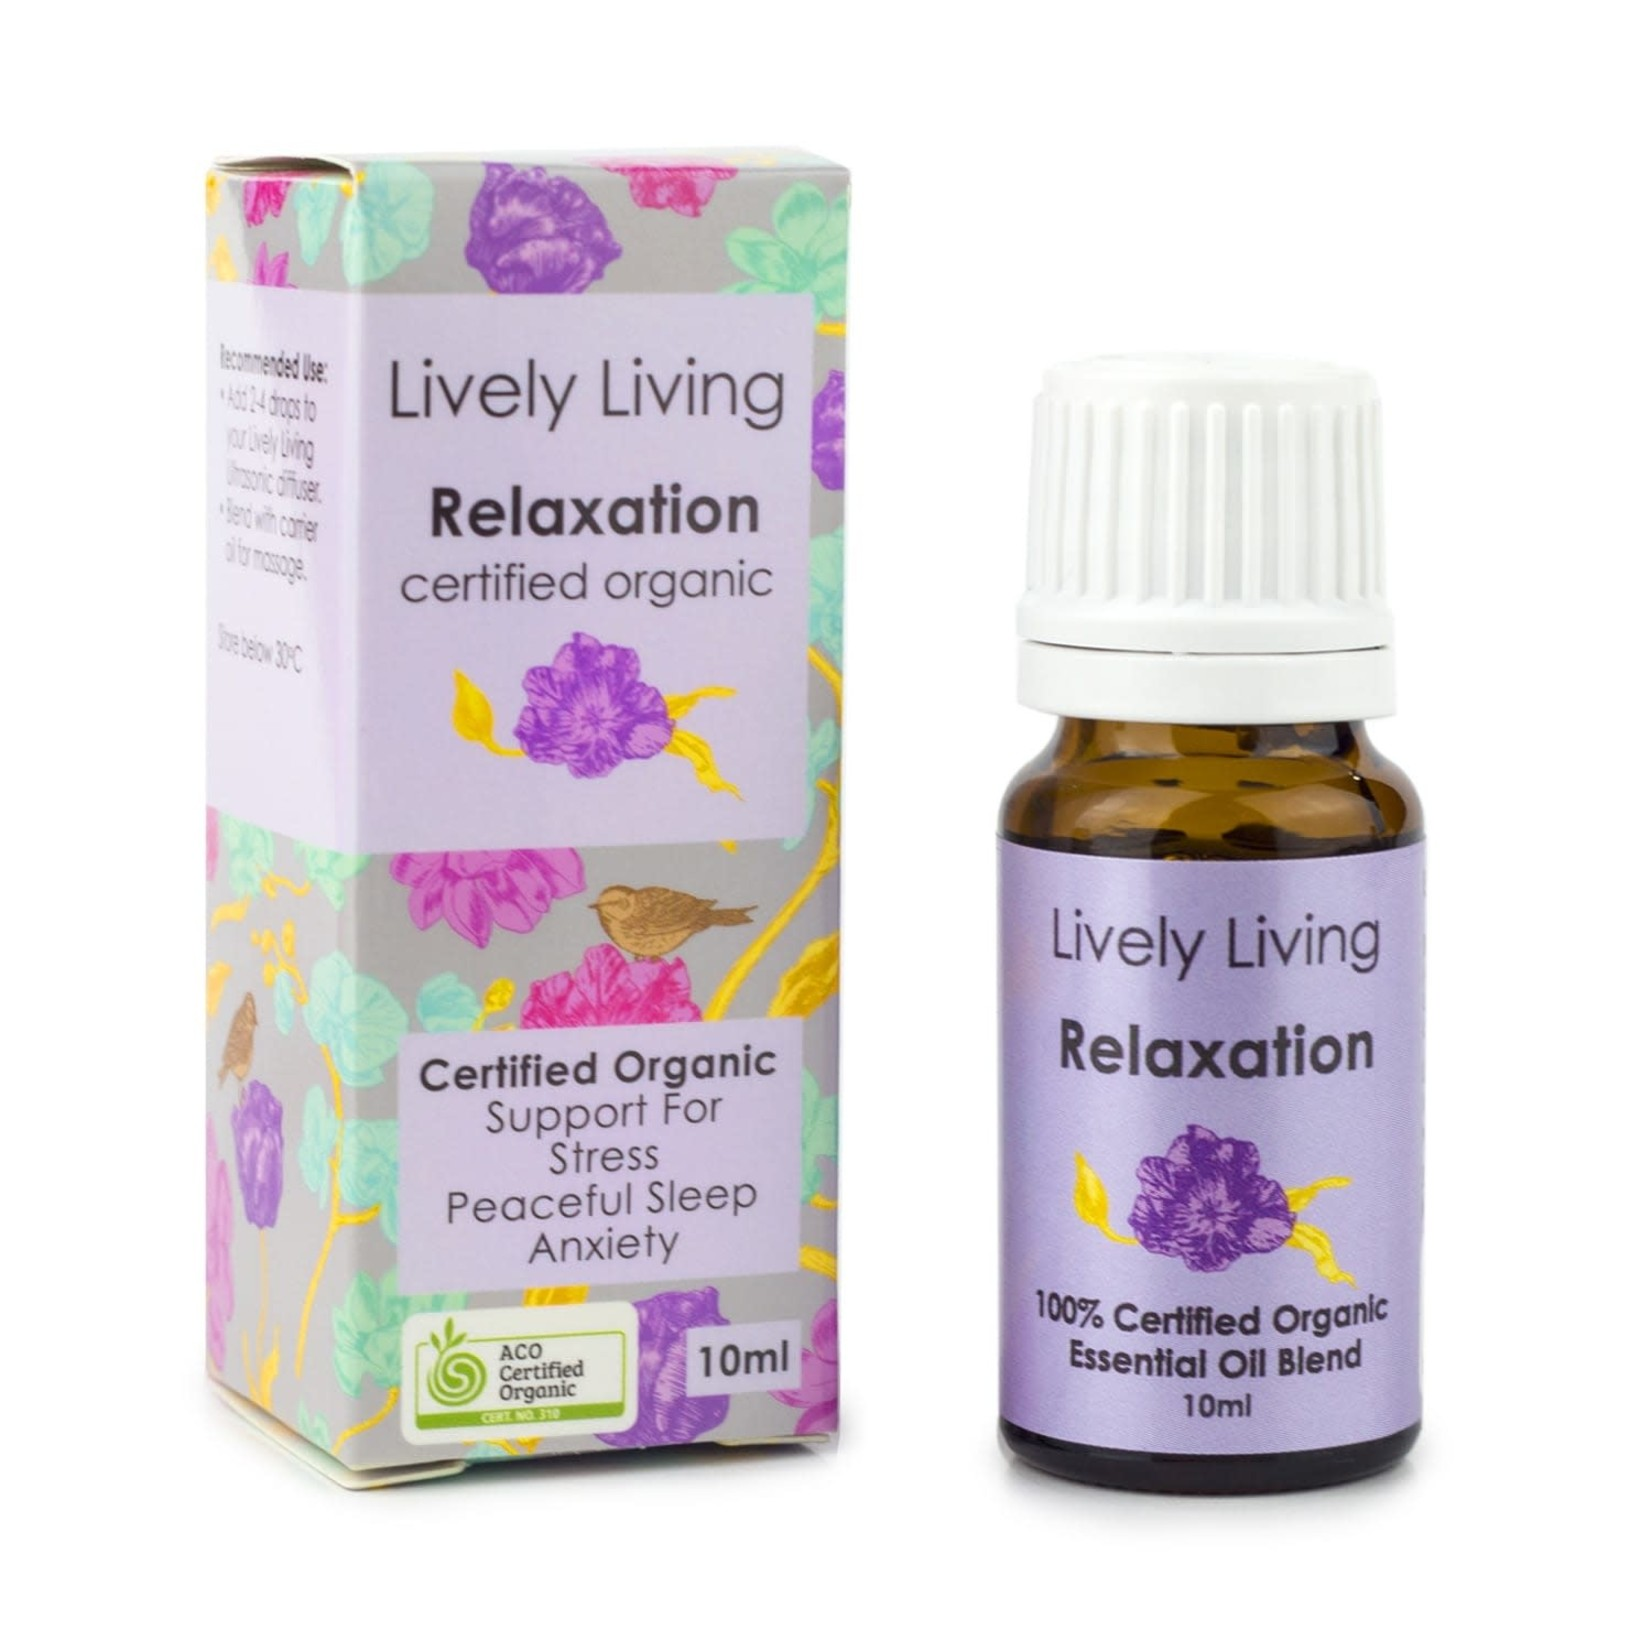 Lively Living Lively Living Organic Essential Oil 10ml Relaxation Blend